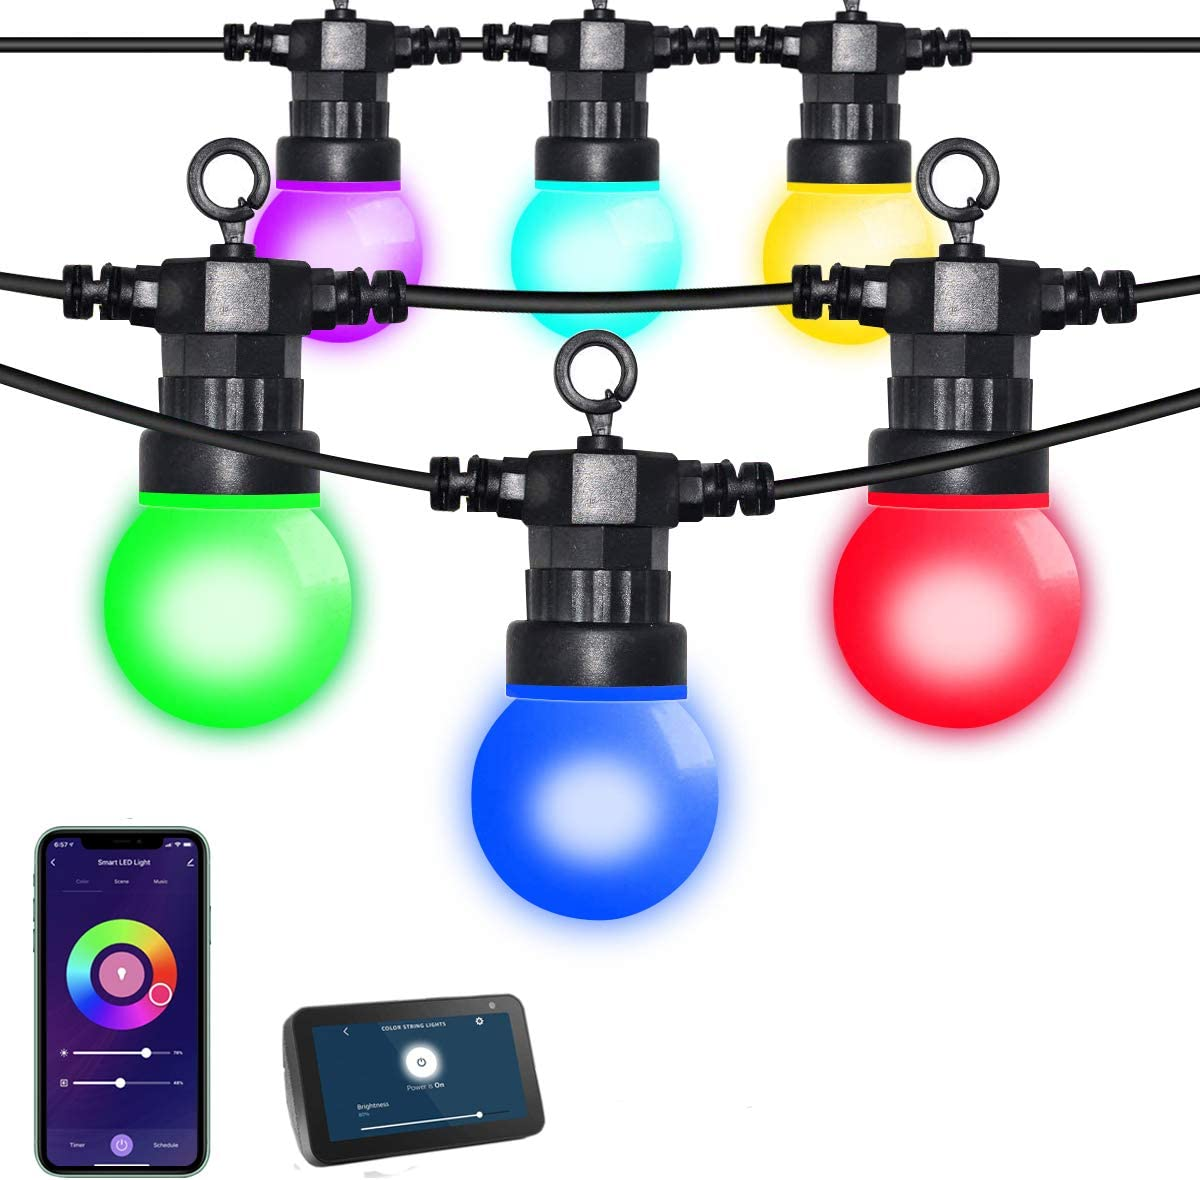 Outdoor RGB String Lights, AIRIVO 33 Ft 12 Bulbs Patio Smart LED String Lights Work with App & Alexa ,Color Changing Waterproof Dimmable Indoor Café Globe Light for Garden, Backyard ,Holidays, Party